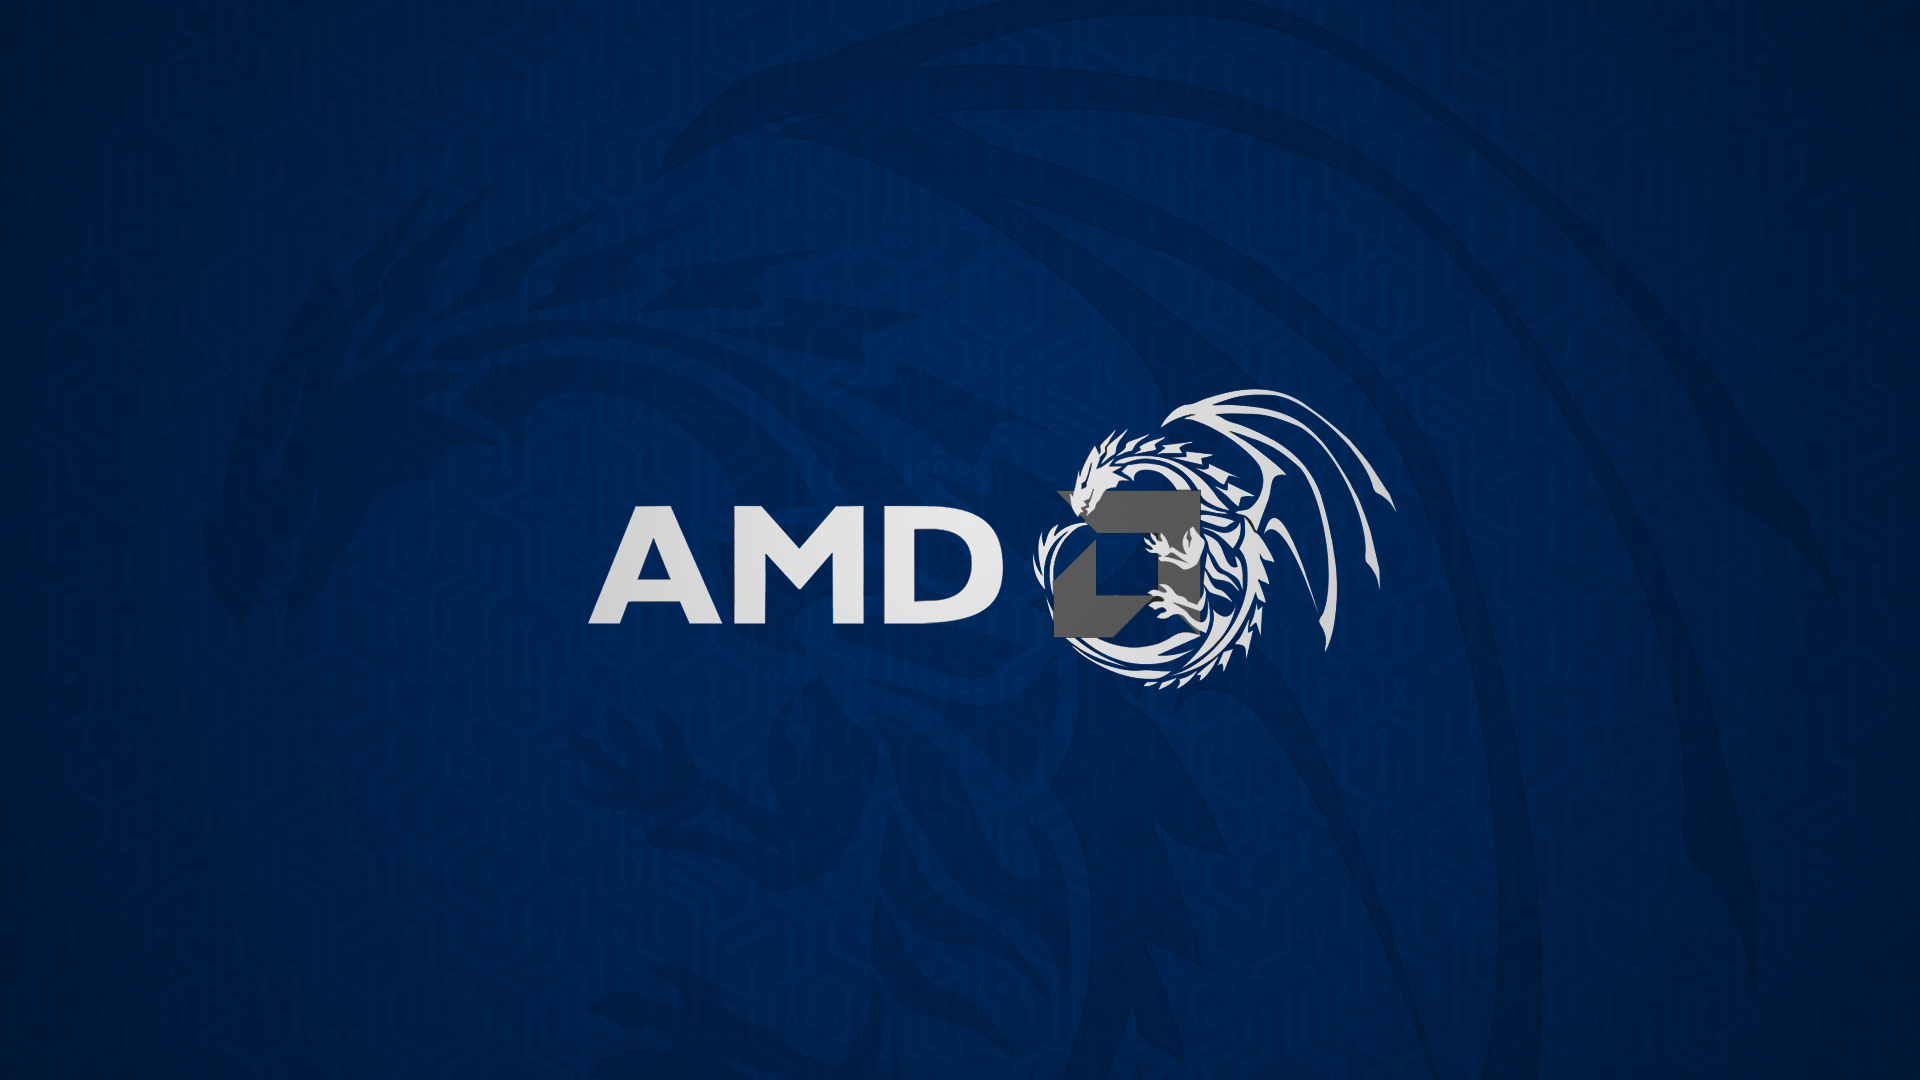 AMD Blue Dragon HD Computer 4k Wallpapers Images Backgrounds